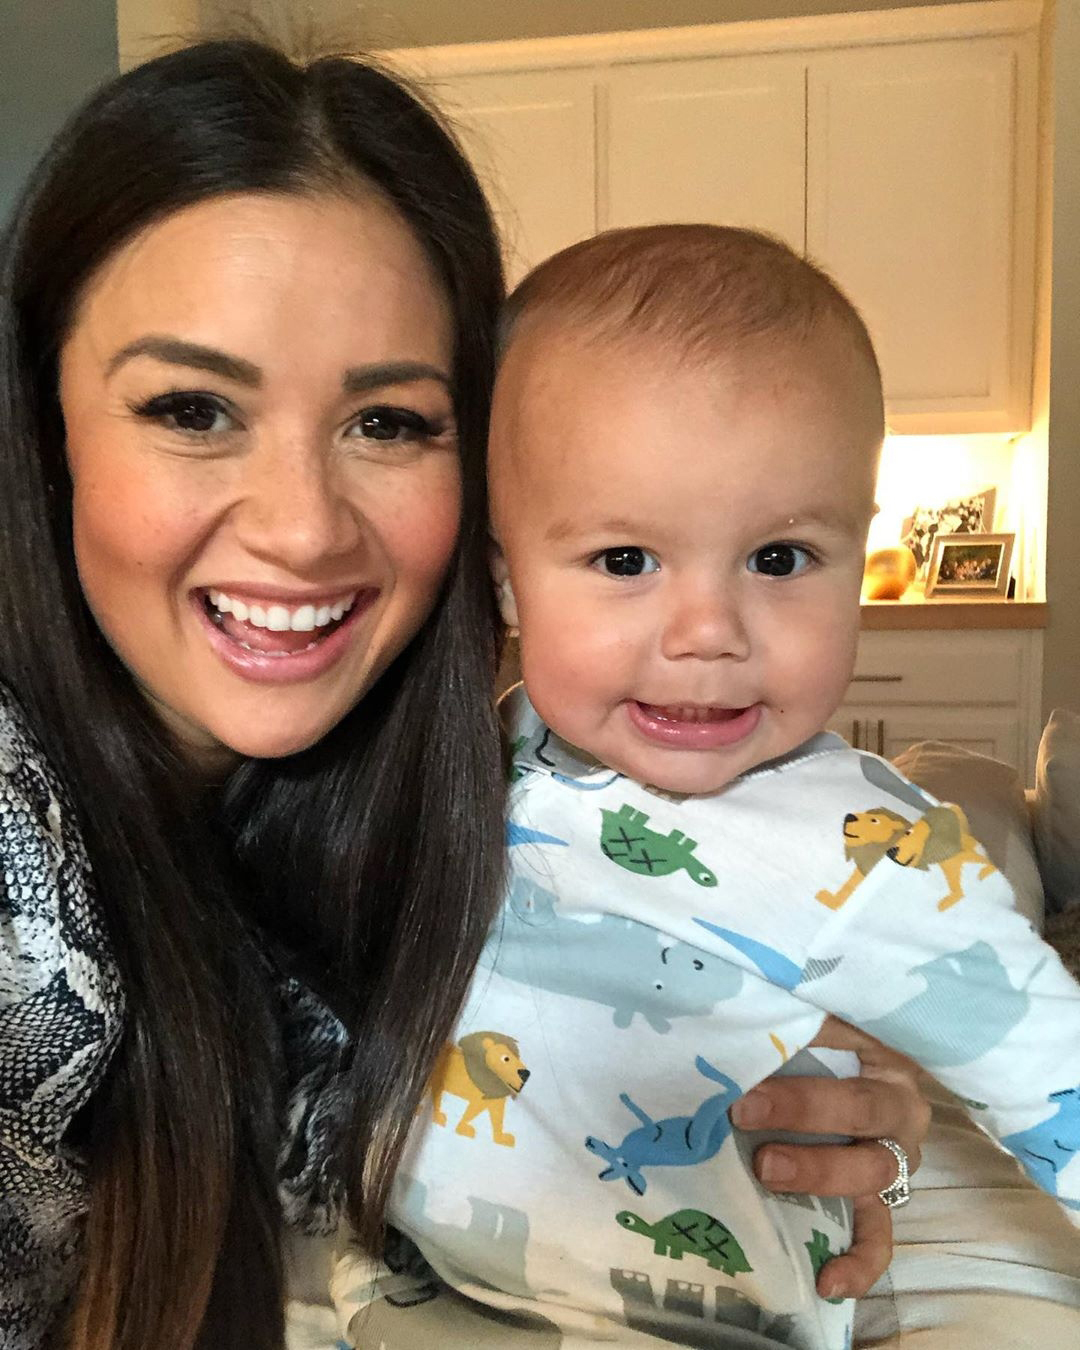 """Catherine Giudici and Sean Lowe Family Album - The pregnant star wrote that she and Isaiah were """"a coupla [sic] middle children"""" after telling her followers that she is expecting."""